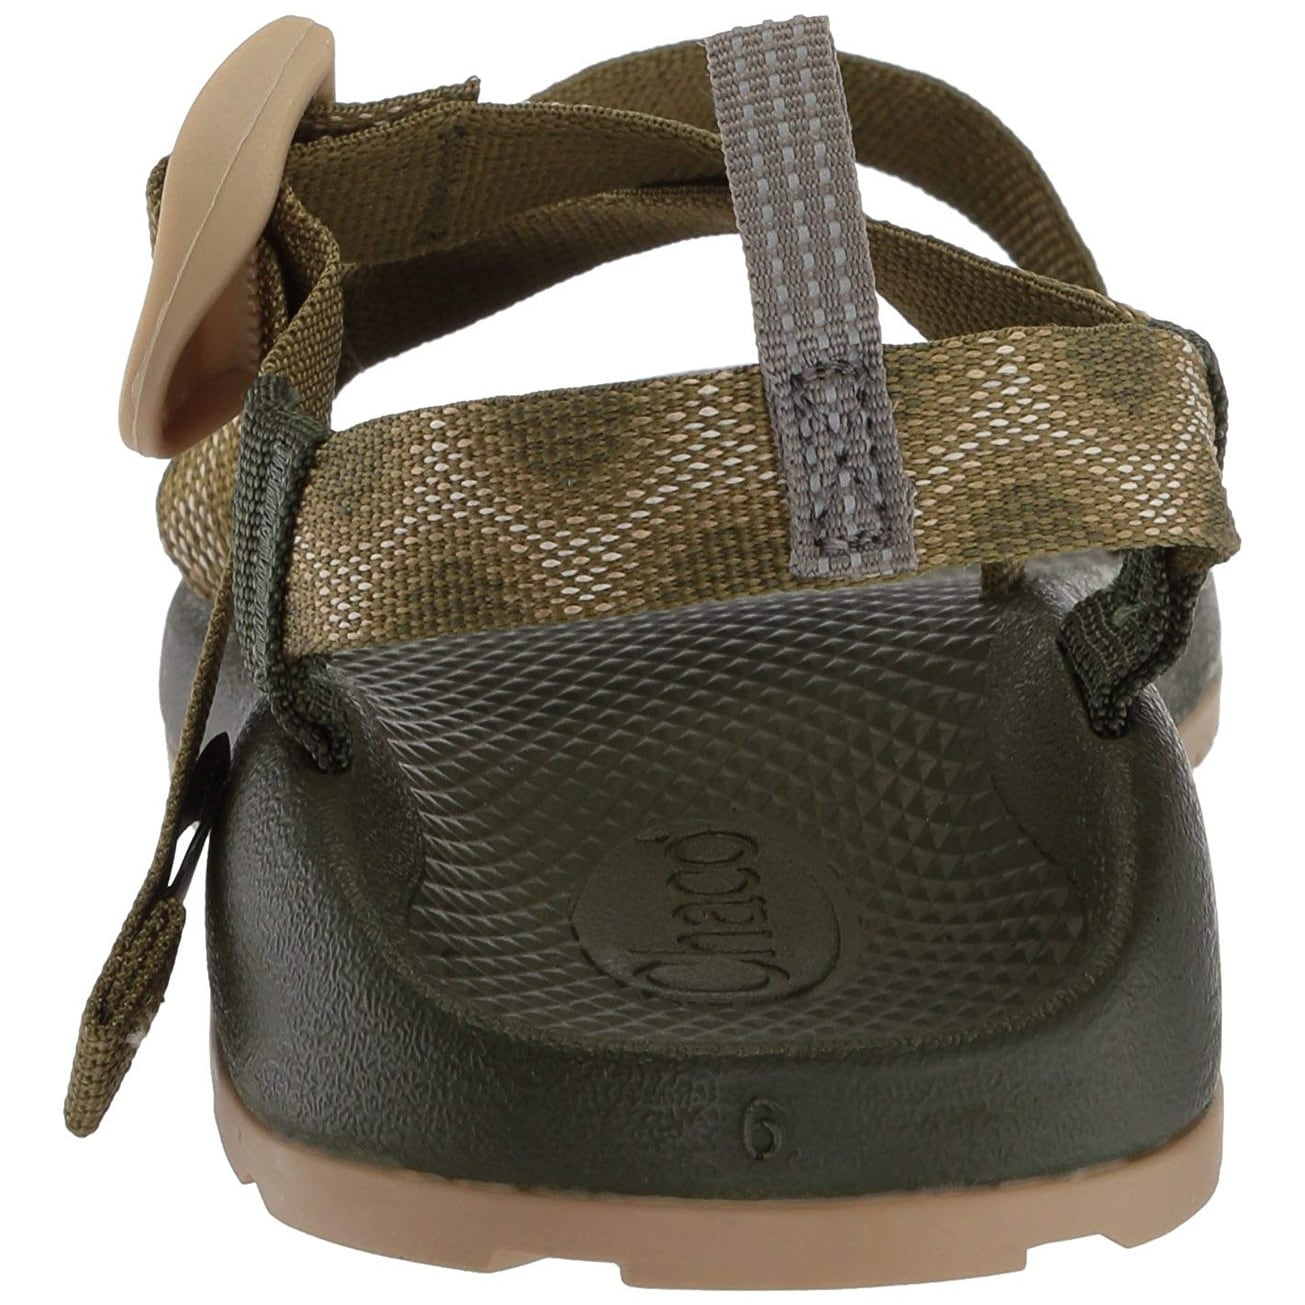 91faeba5f044a7 Shop Chaco Z1 Ecotread Sandal (Toddler Little Kid Big Kid) - Free Shipping  On Orders Over  45 - Overstock - 22882599